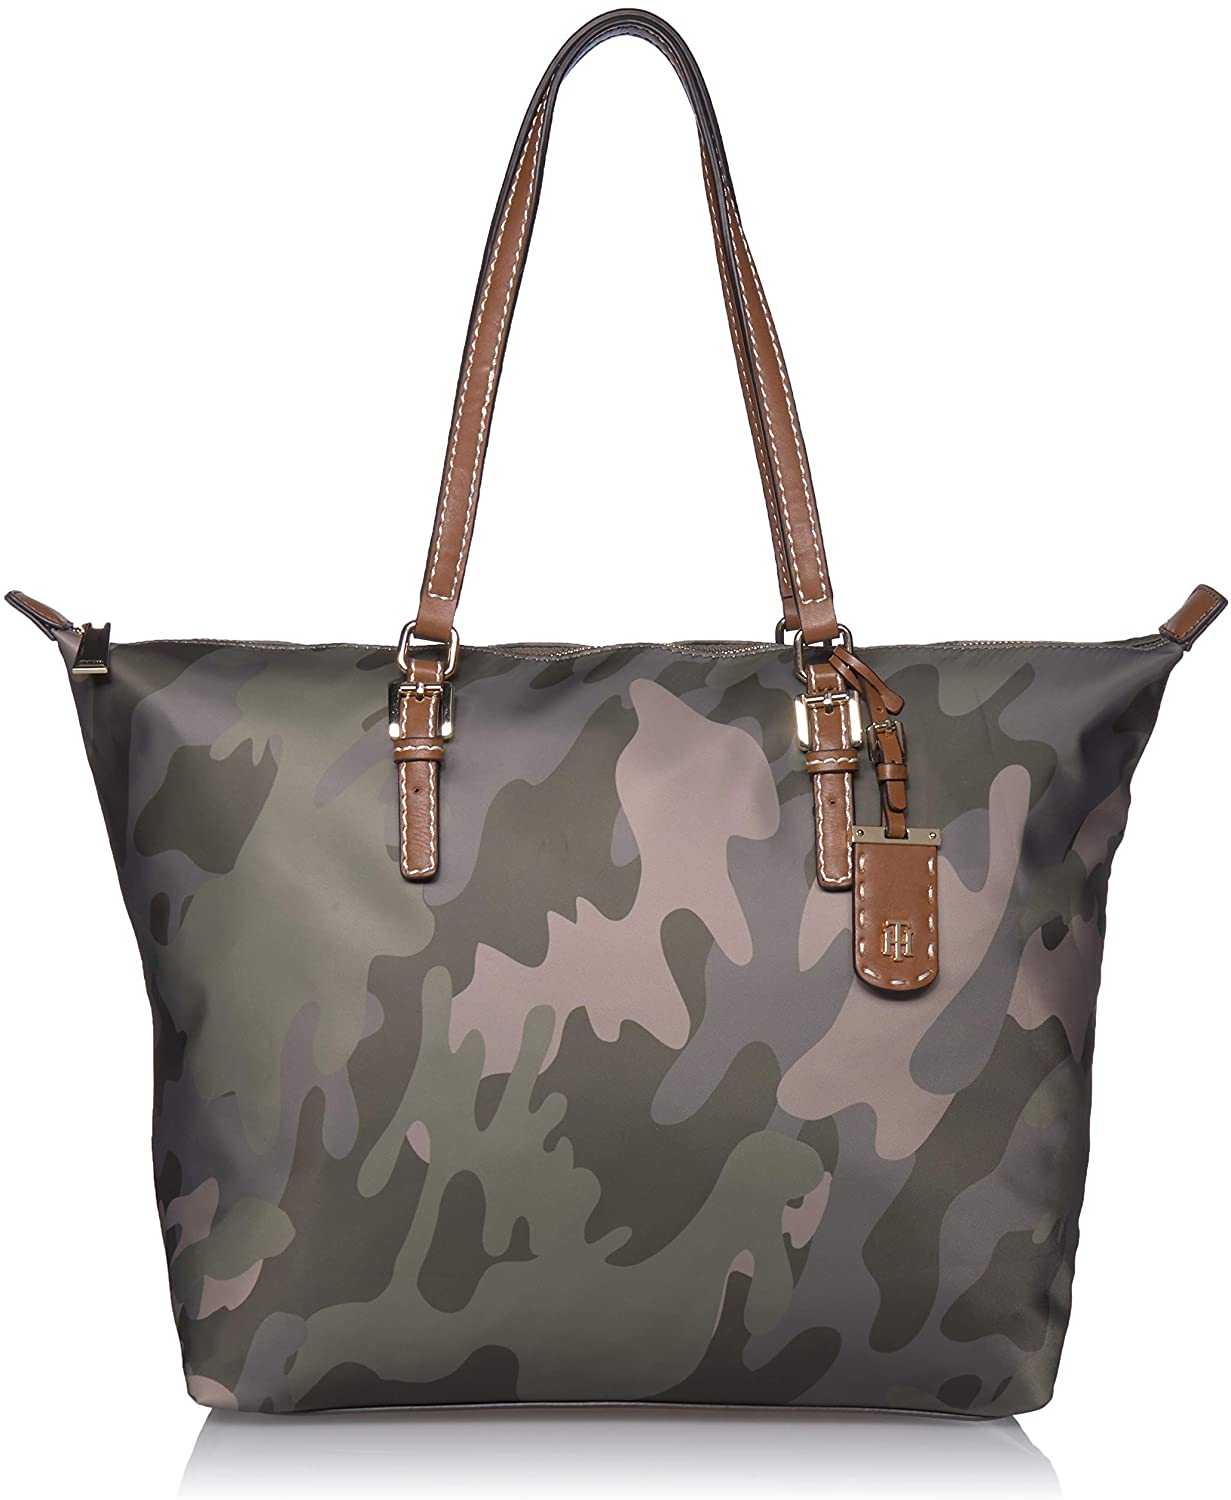 Tommy Hilfiger Julia Zippered Tote, Green  Clothing